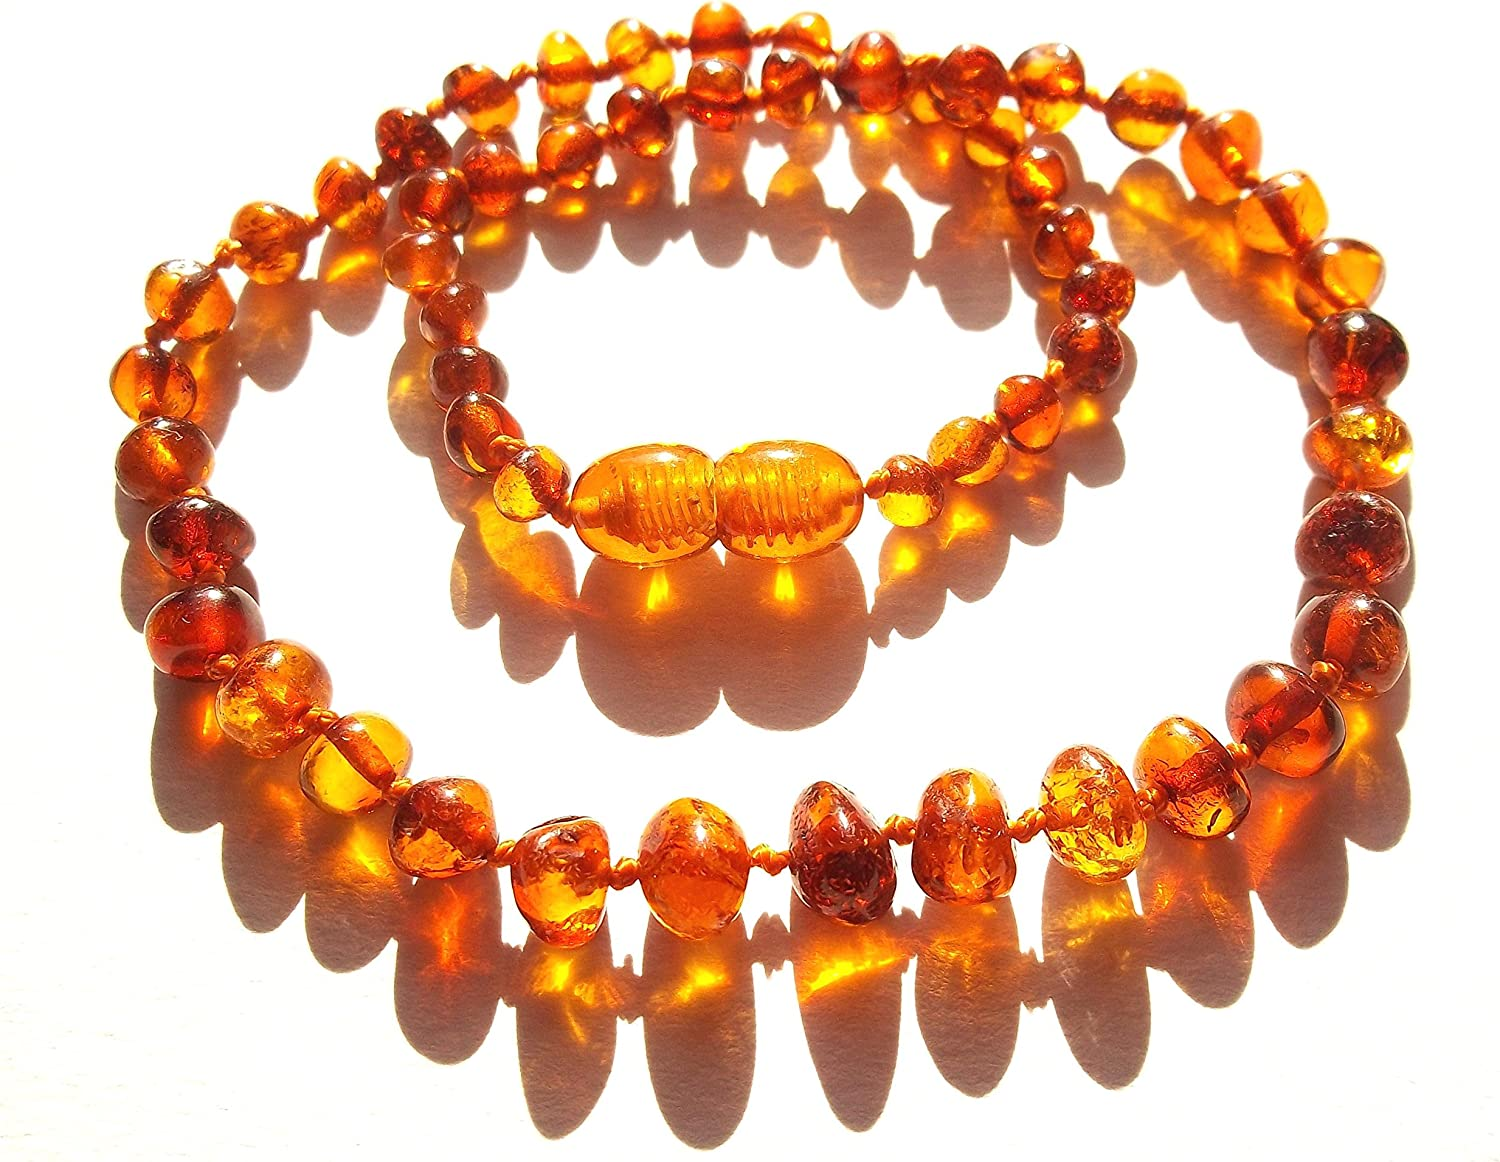 Amberta Collier Ambre 33cm 100/% Plus Haute Qualite Certifie lAmbre la Baltique Authentique Collier Perles